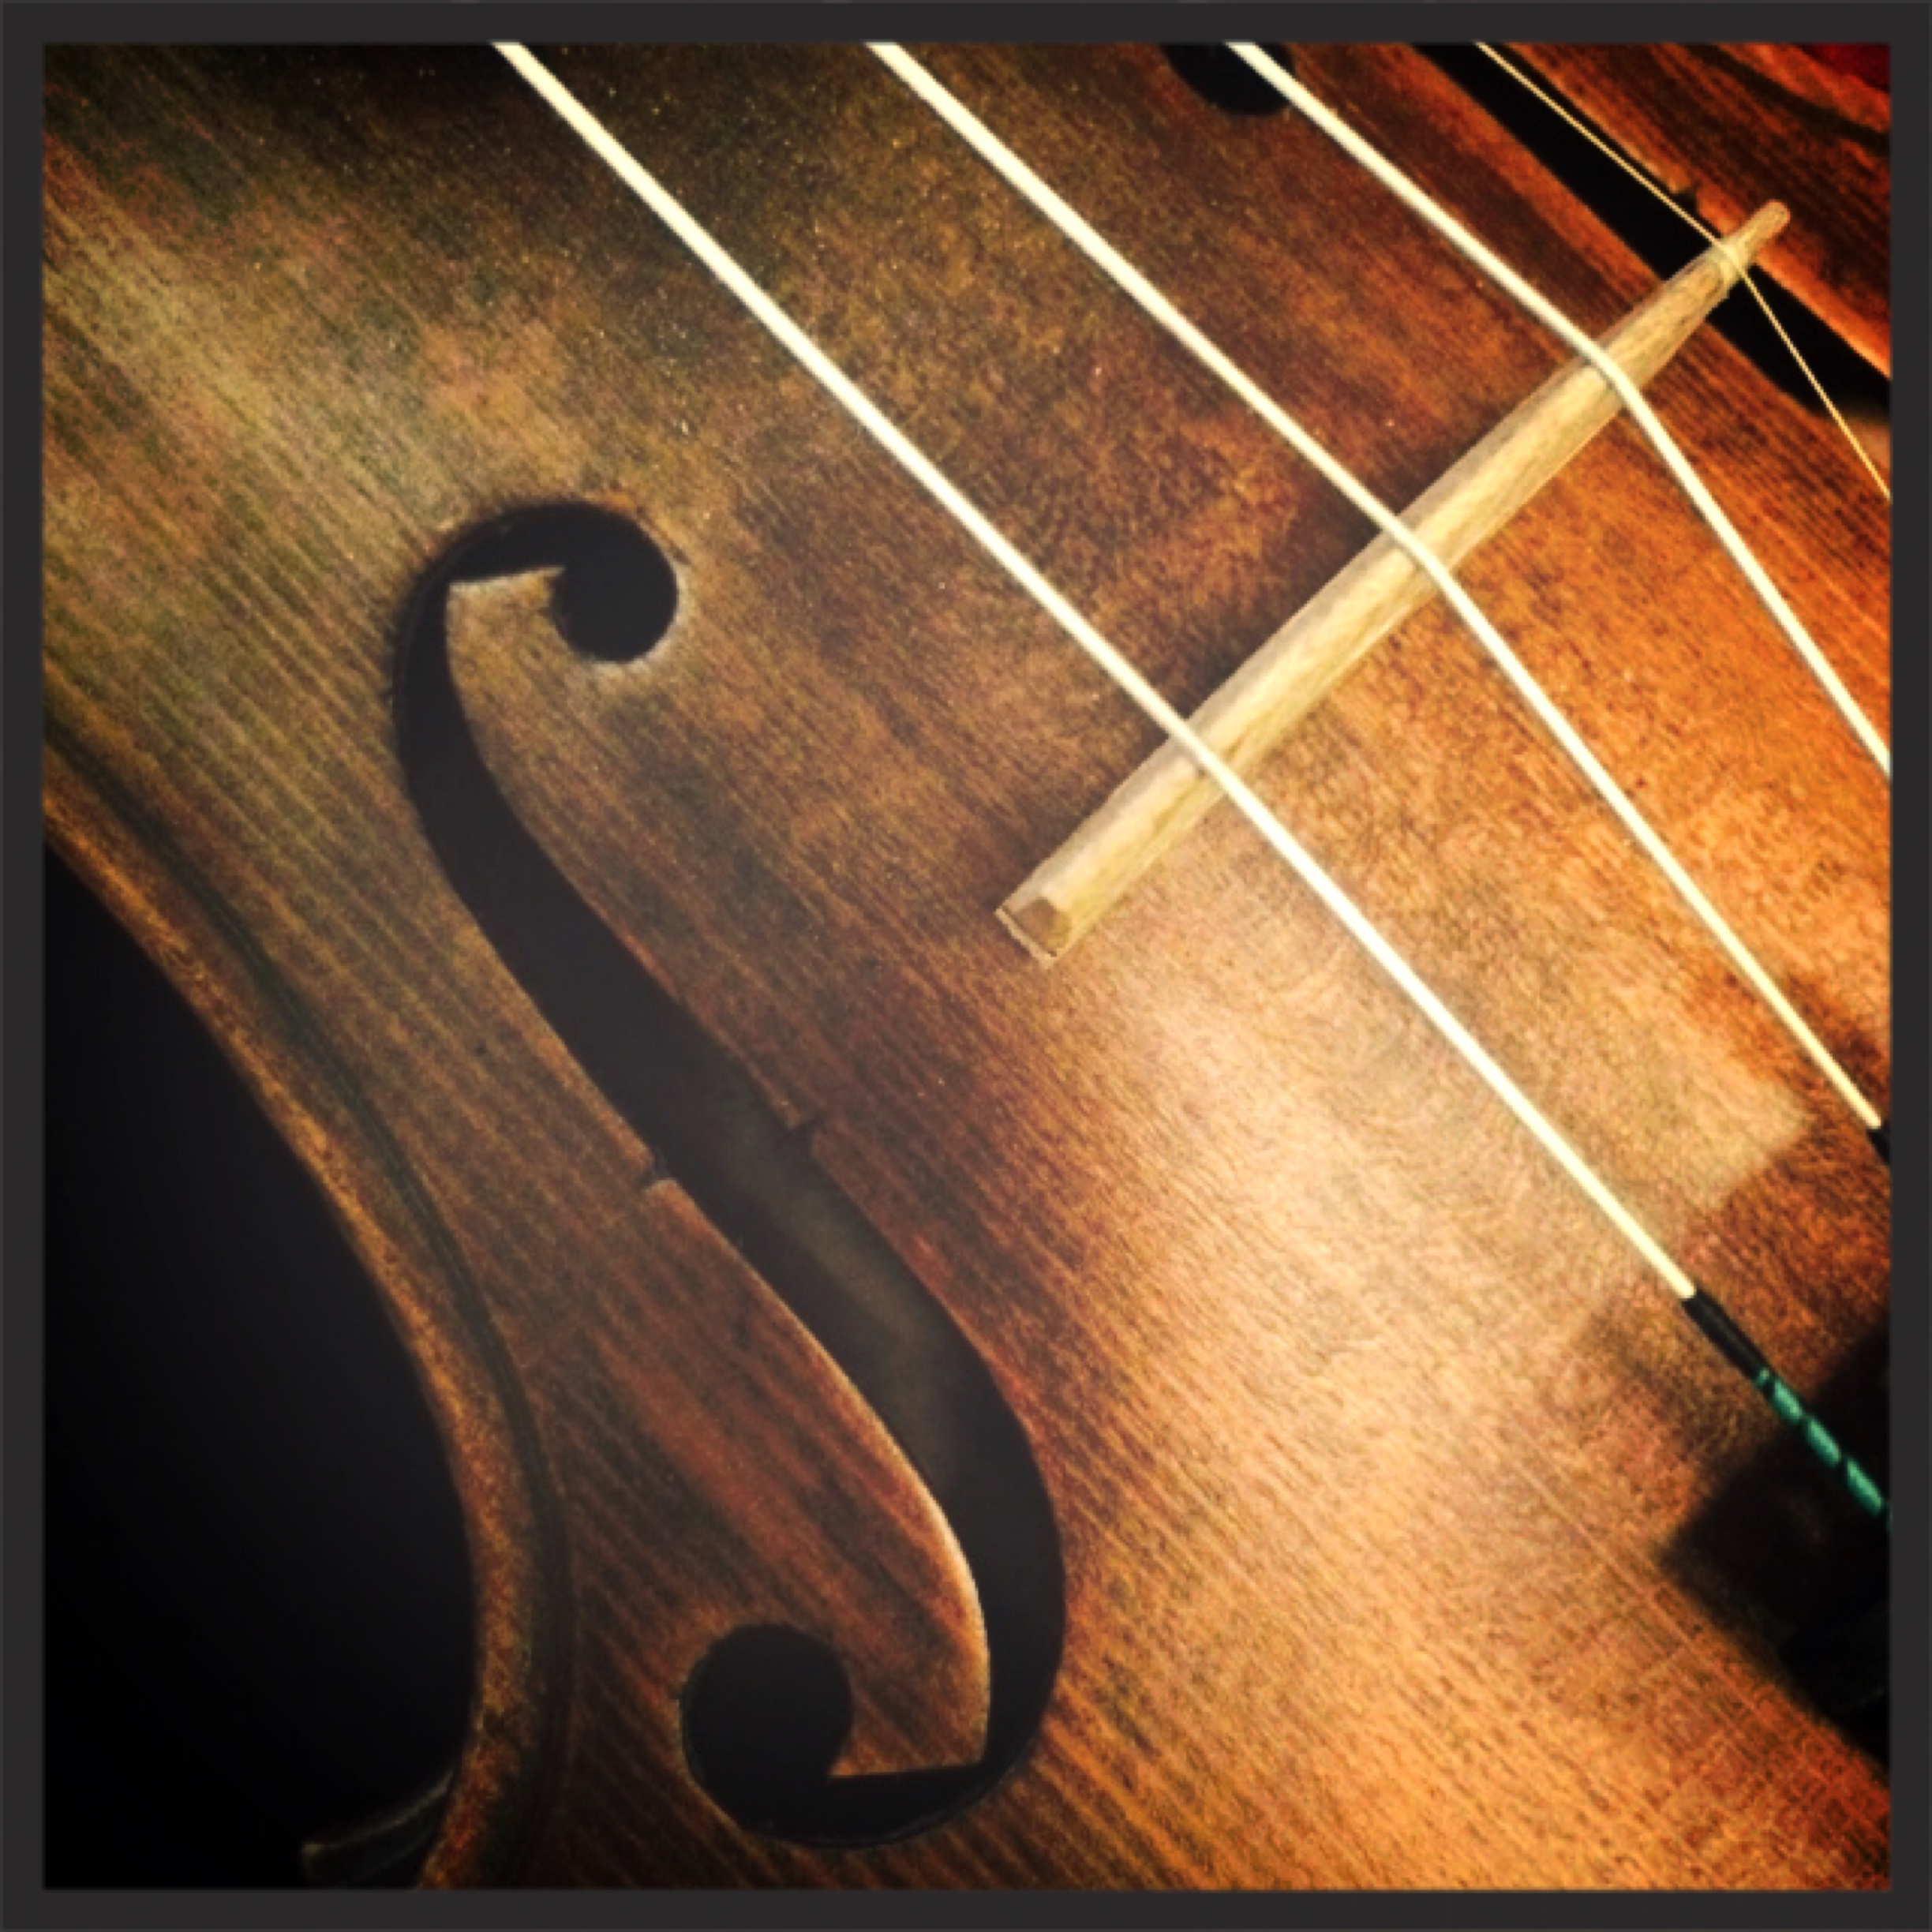 My old violin, which has been in my family for years.